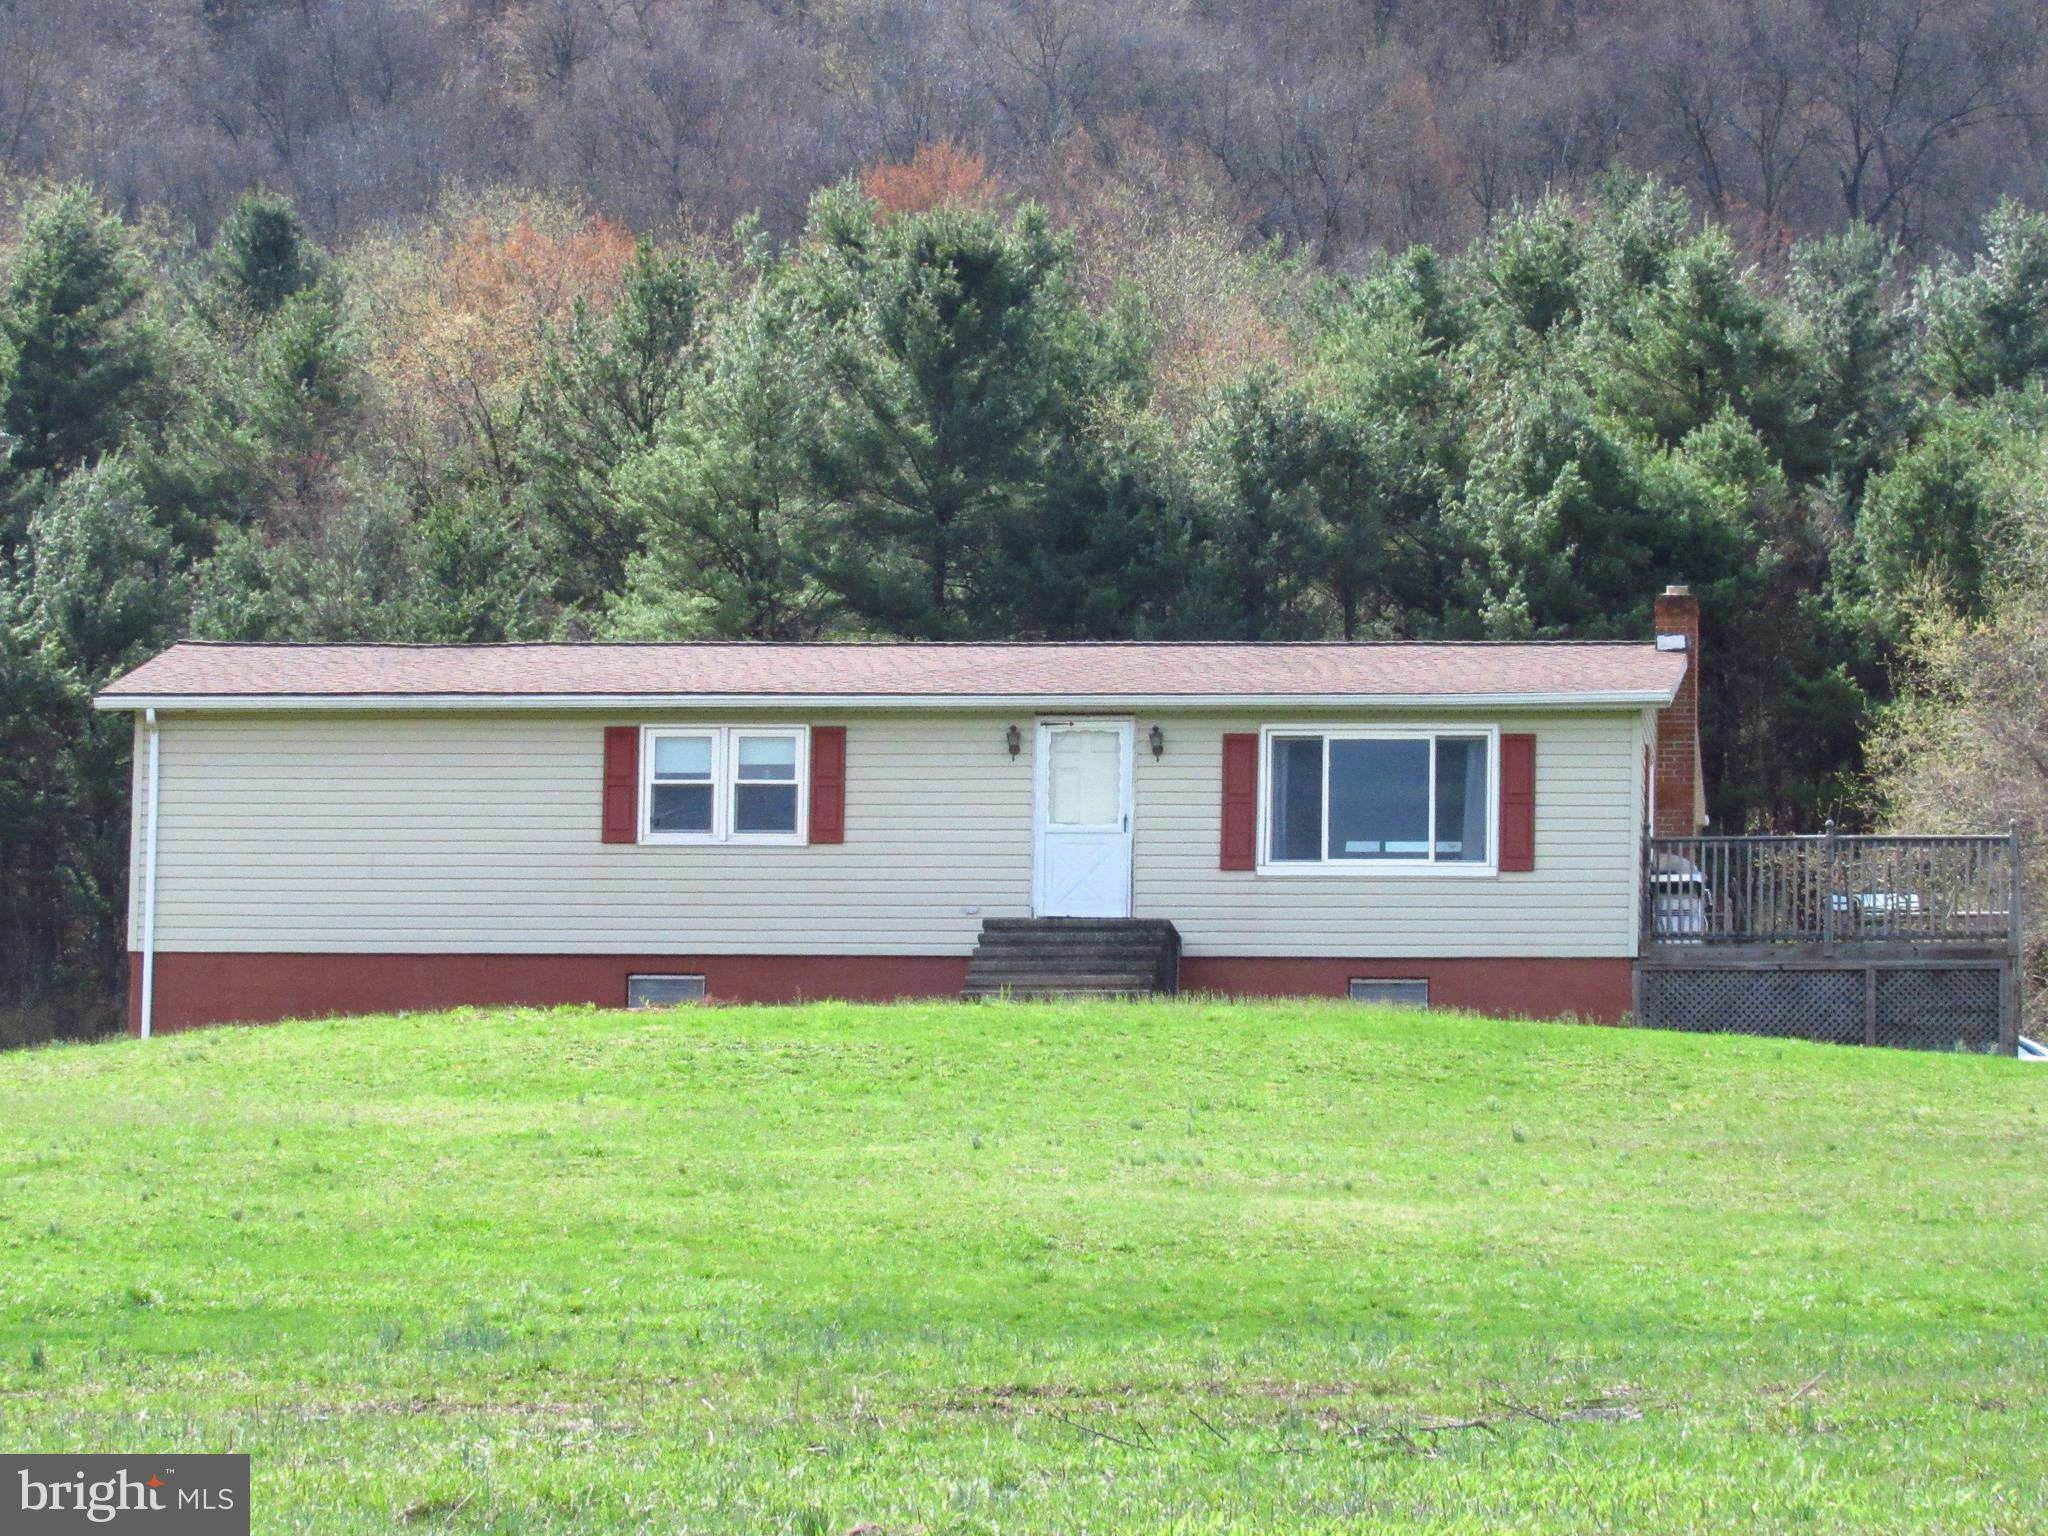 21004 SHORE VALLEY ROAD, THREE SPRINGS, PA 17264